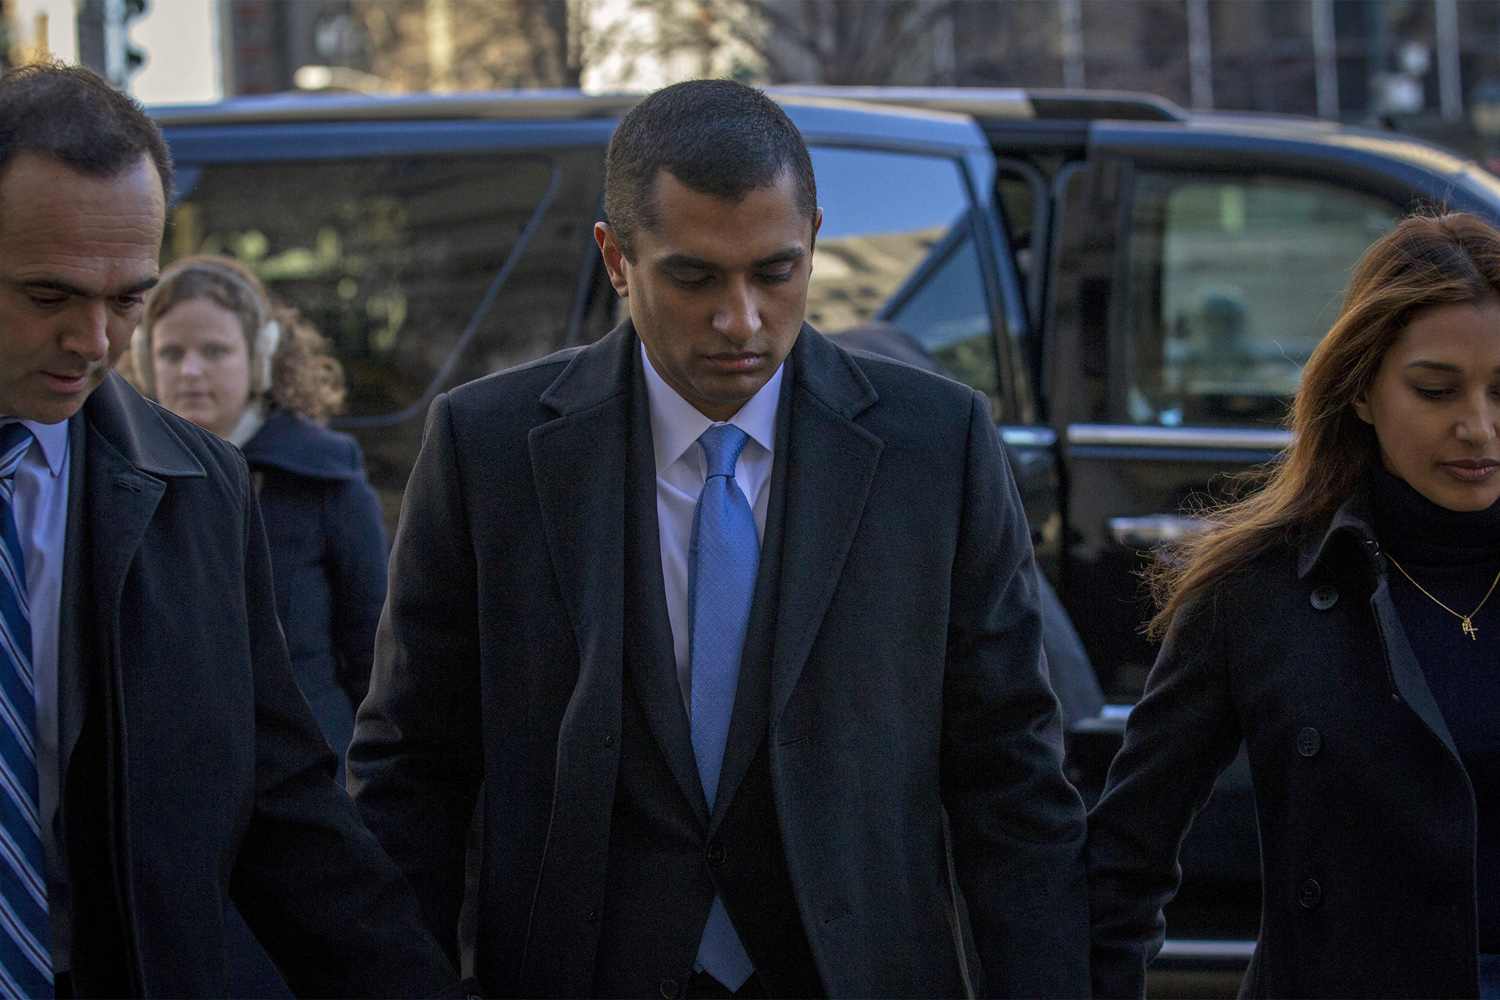 Former SAC Capital portfolio manager Mathew Martoma (C) arrives at the Manhattan Federal Courthouse with his lawyer in New York, January 7, 2014. Martoma is charged with using confidential information provided by two doctors involved in clinical trial to trade in drug companies Elan Corp Plc and Wyeth, which is now owned by Pfizer Inc.